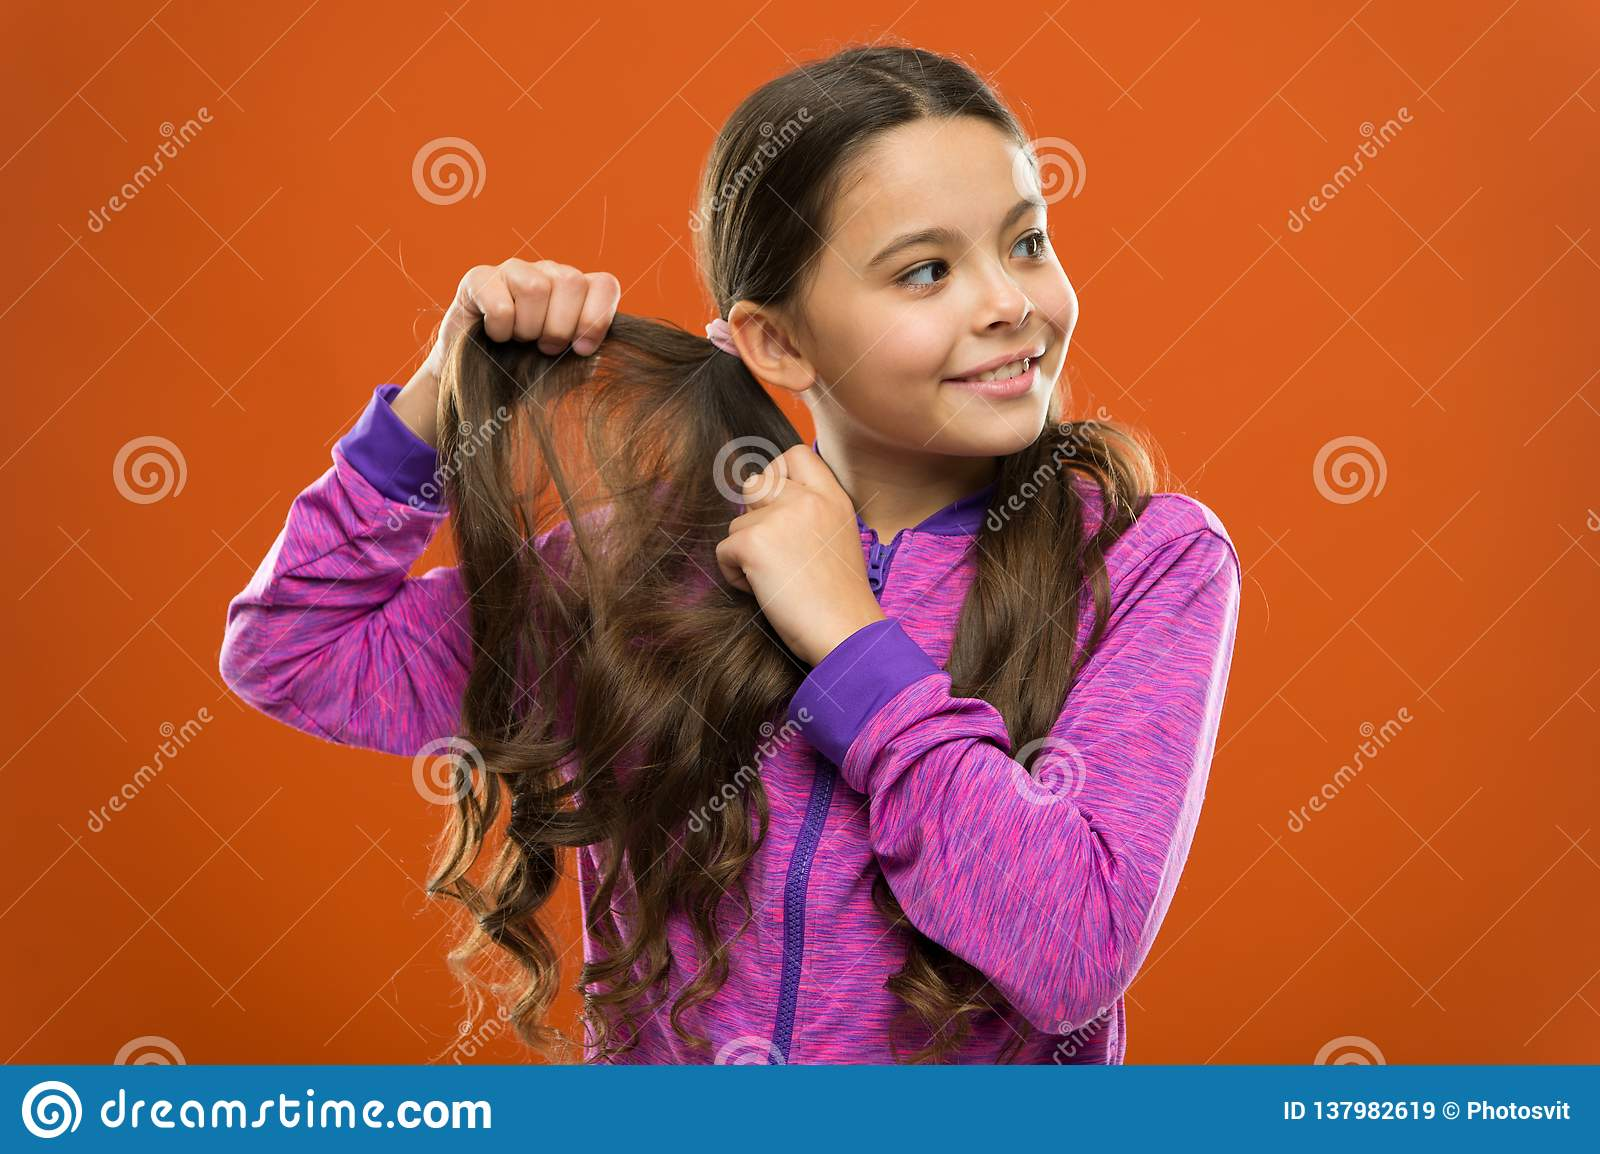 Charming beauty. Girl active kid with long gorgeous hair. Strong and healthy hair concept. How to treat curly hair. Easy